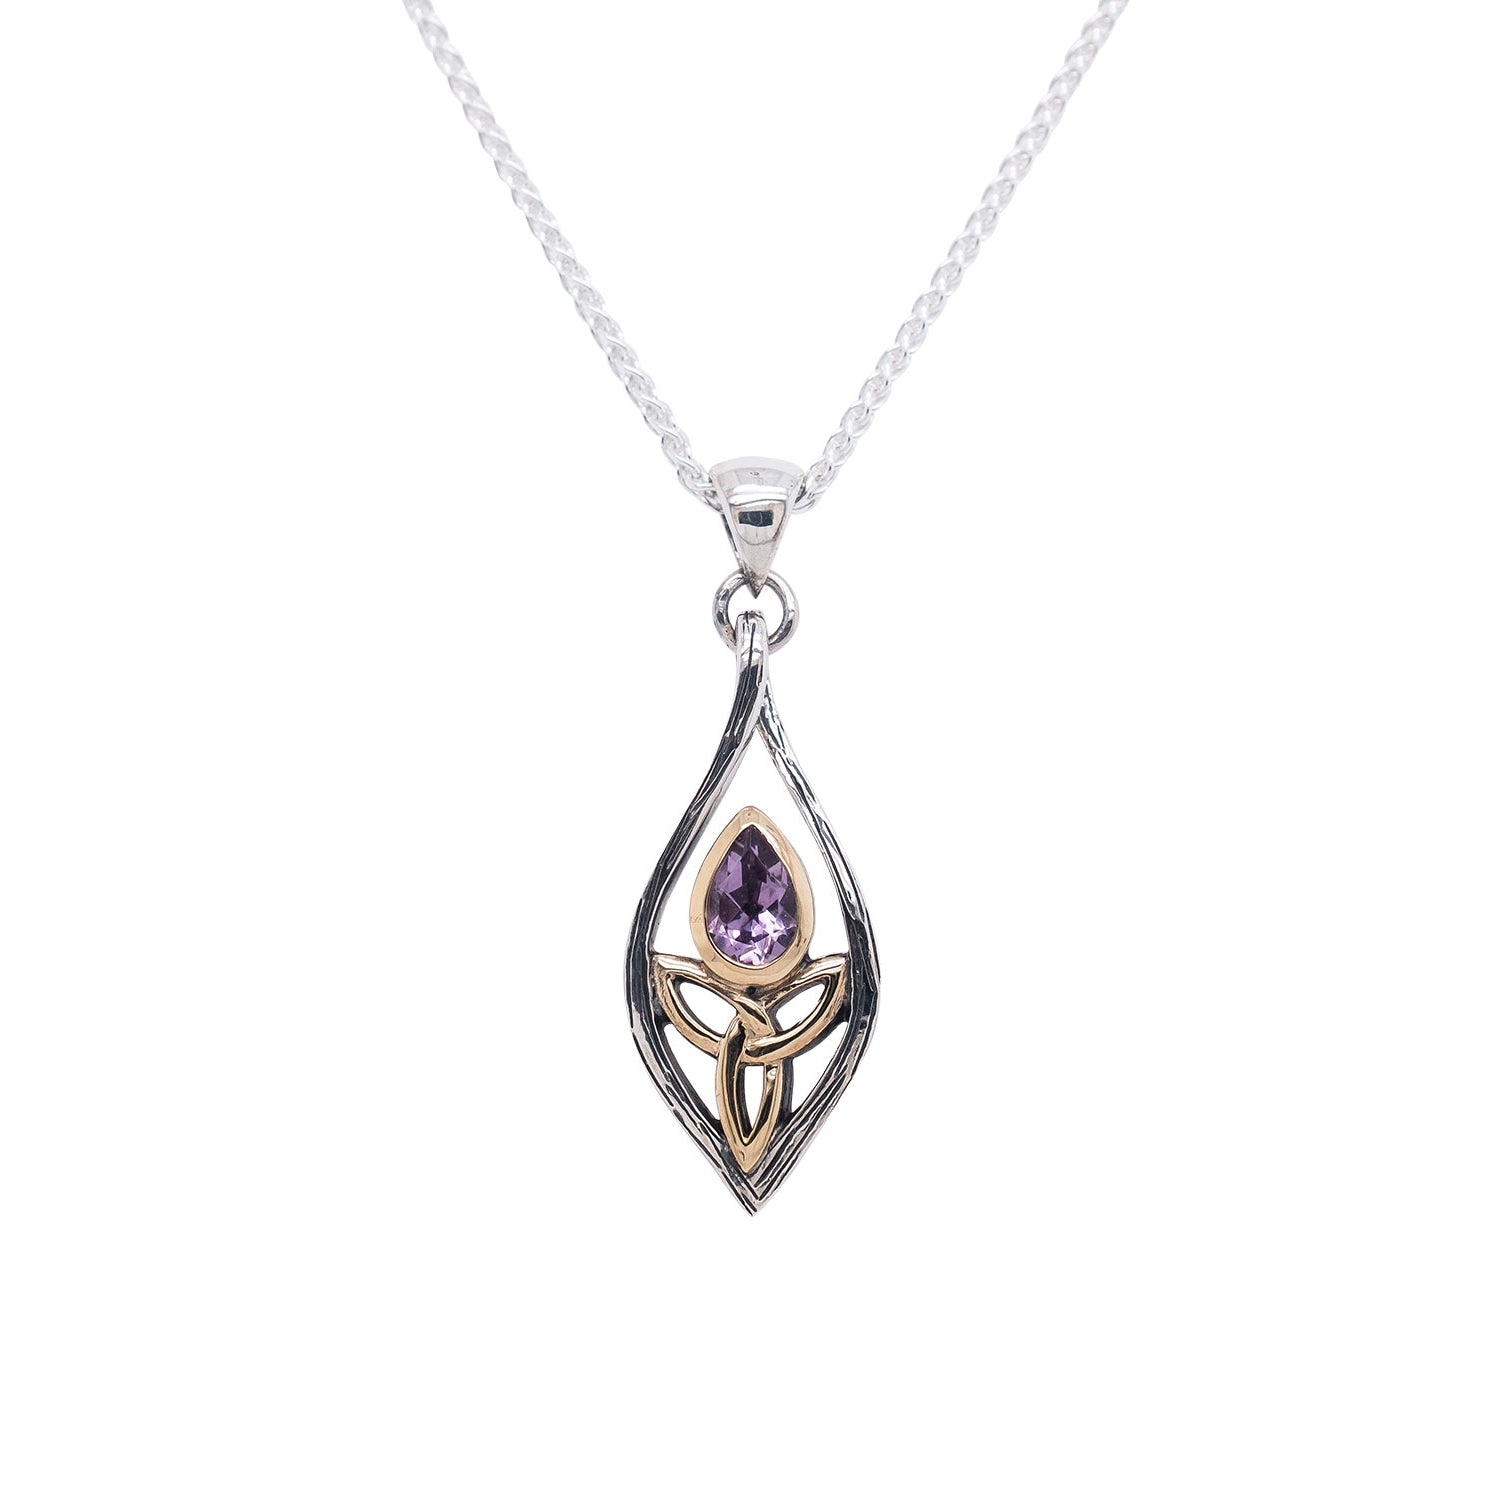 Pendant 10k Angel Amethyst Pendant Small from welch and company jewelers near syracuse ny